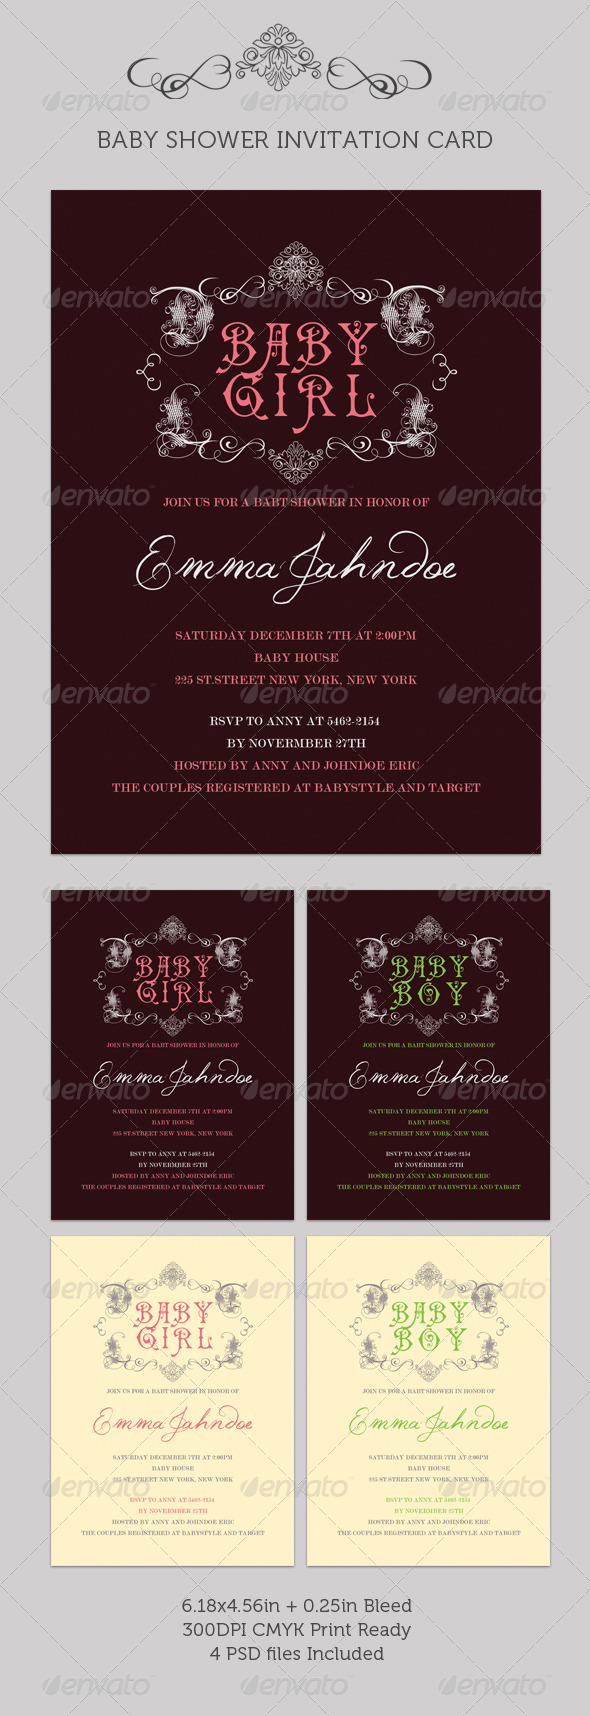 GraphicRiver Baby Shower Invitation Card 239138